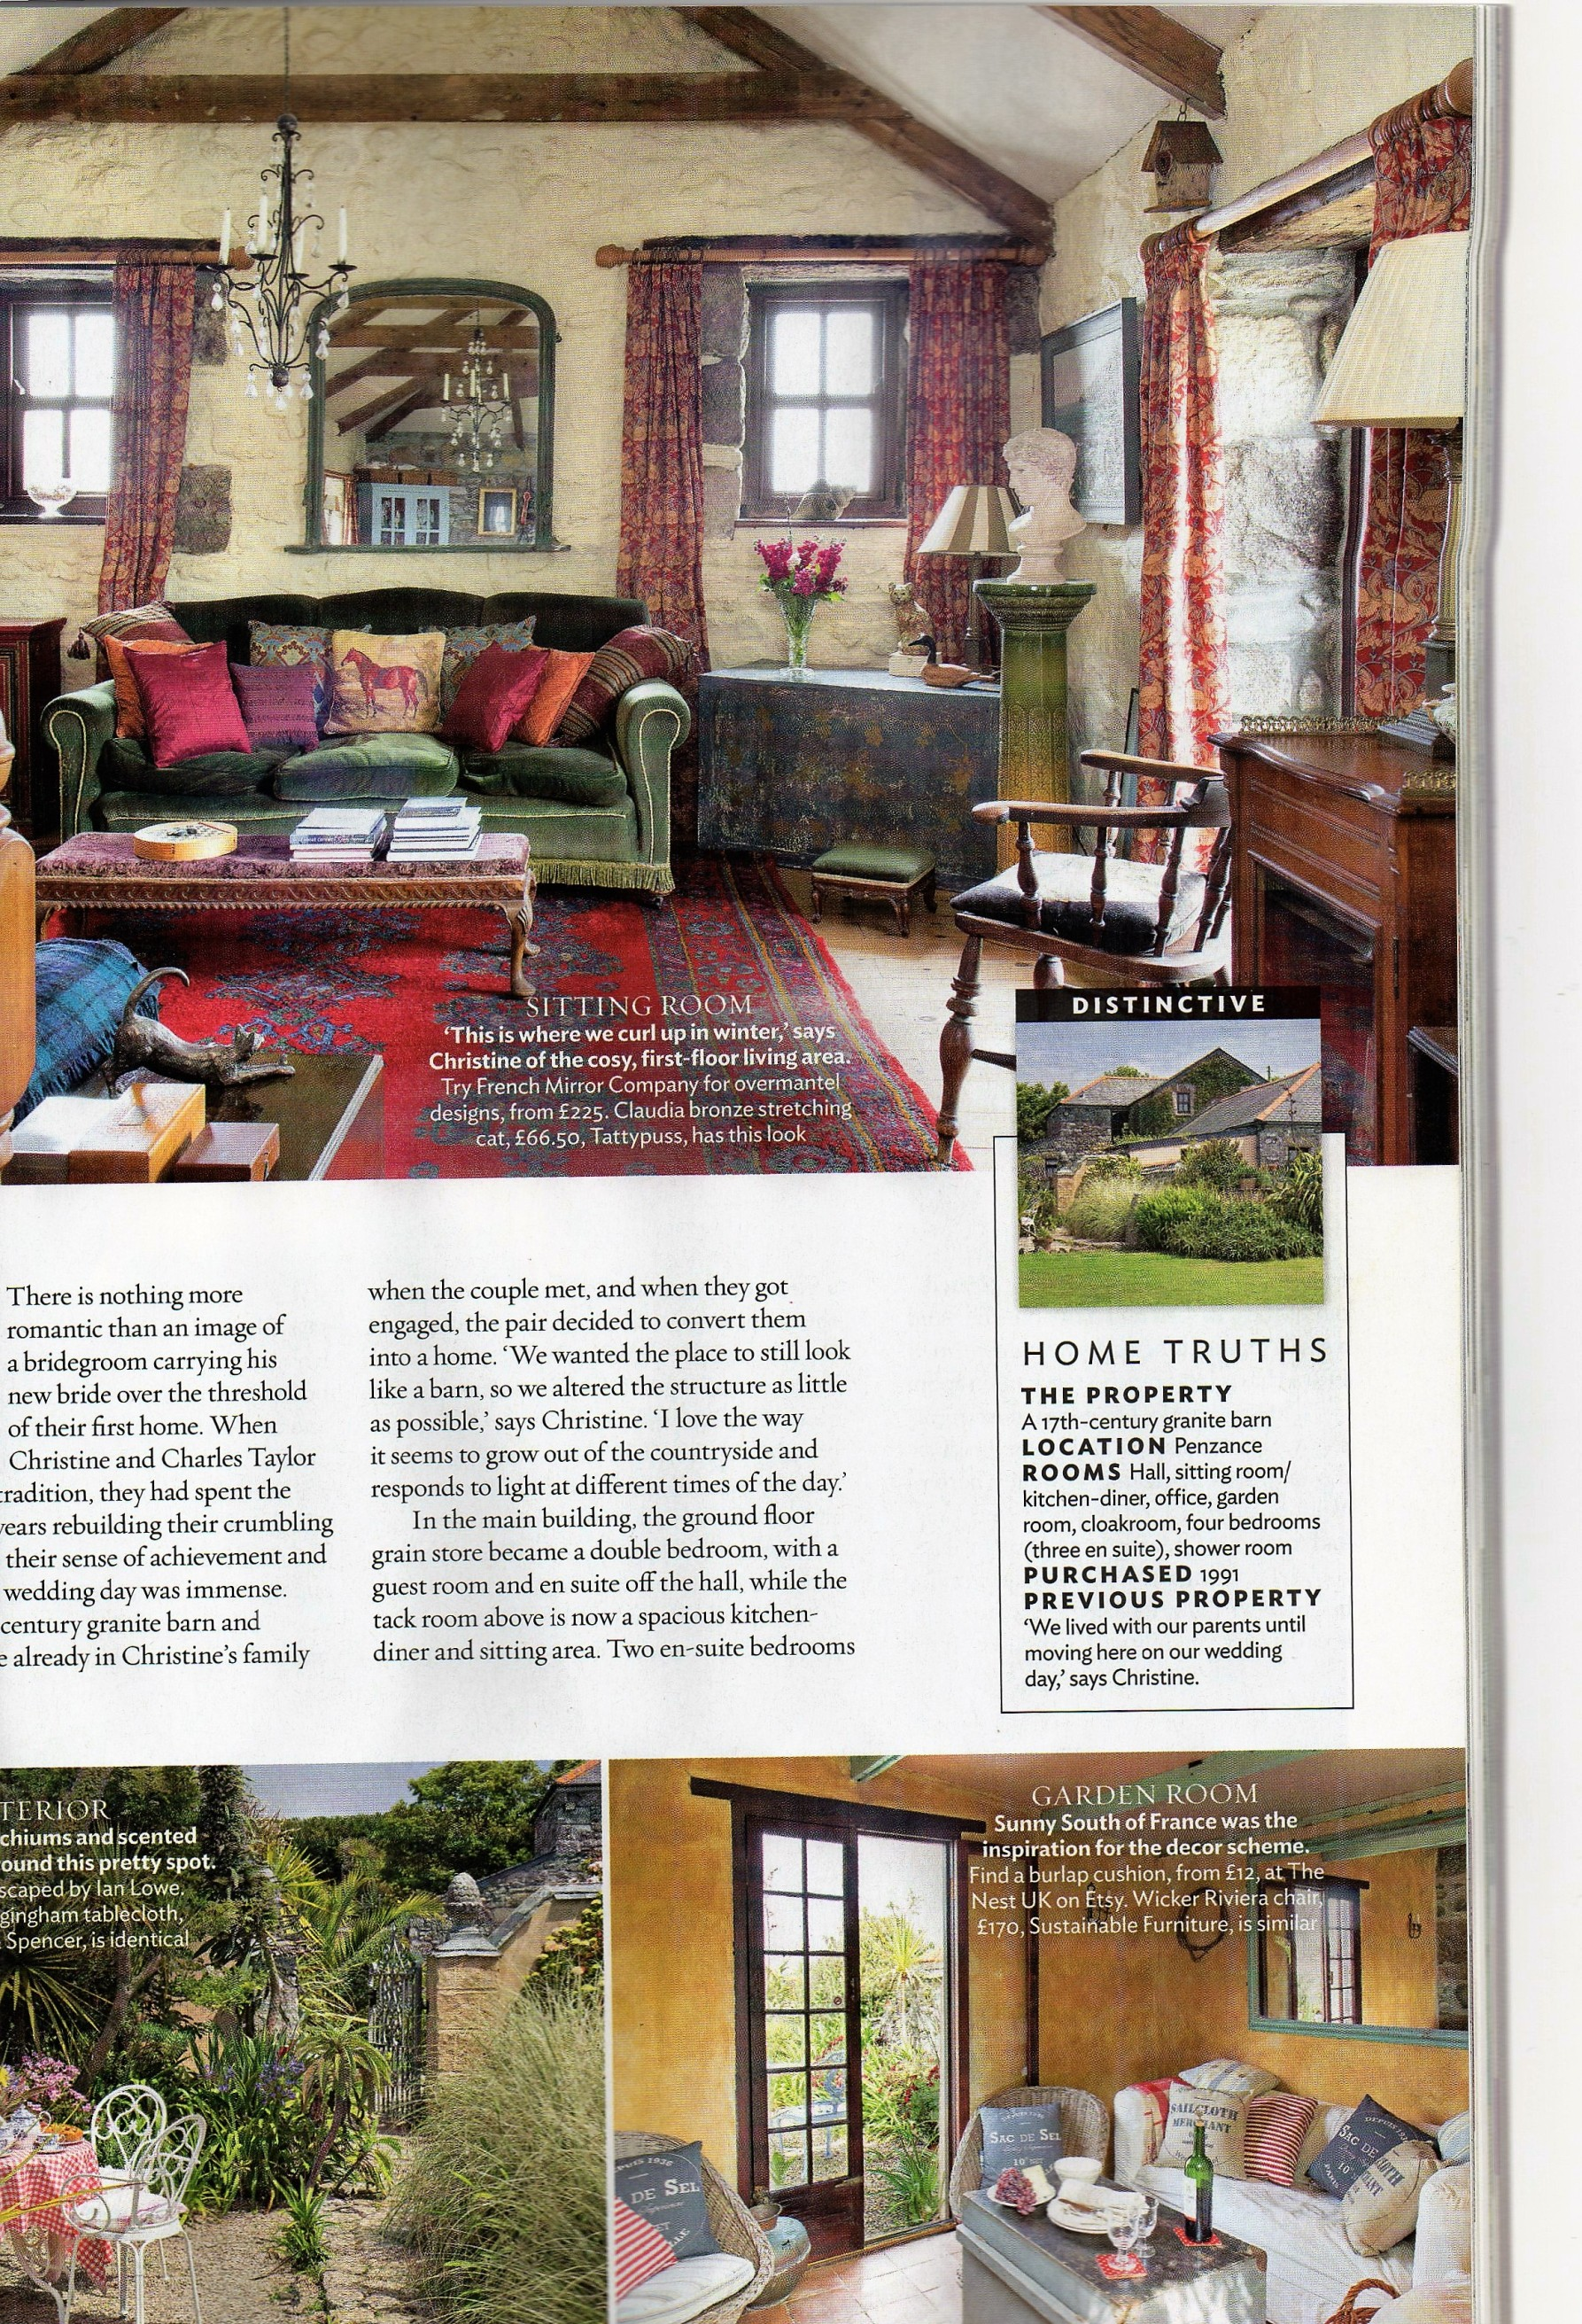 Ednovean Farm in July issue of 25 Beautiful Homes